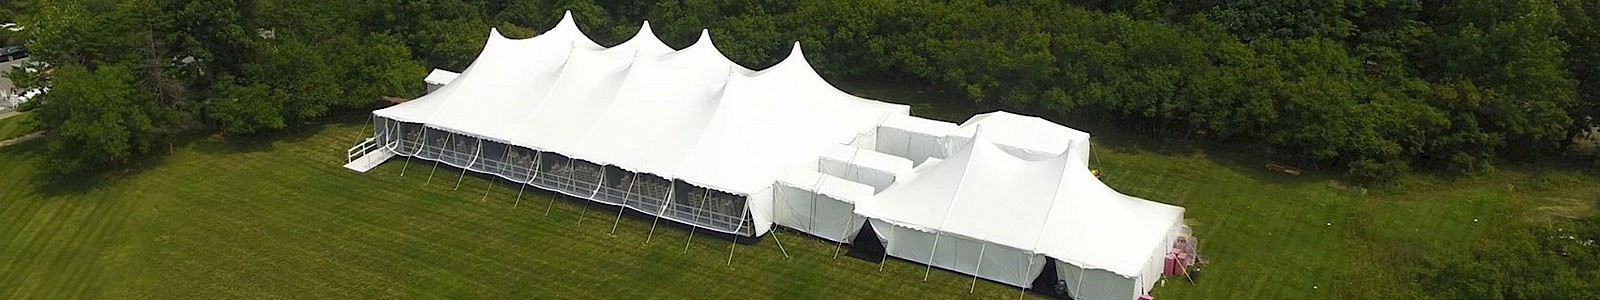 Country Club Tent